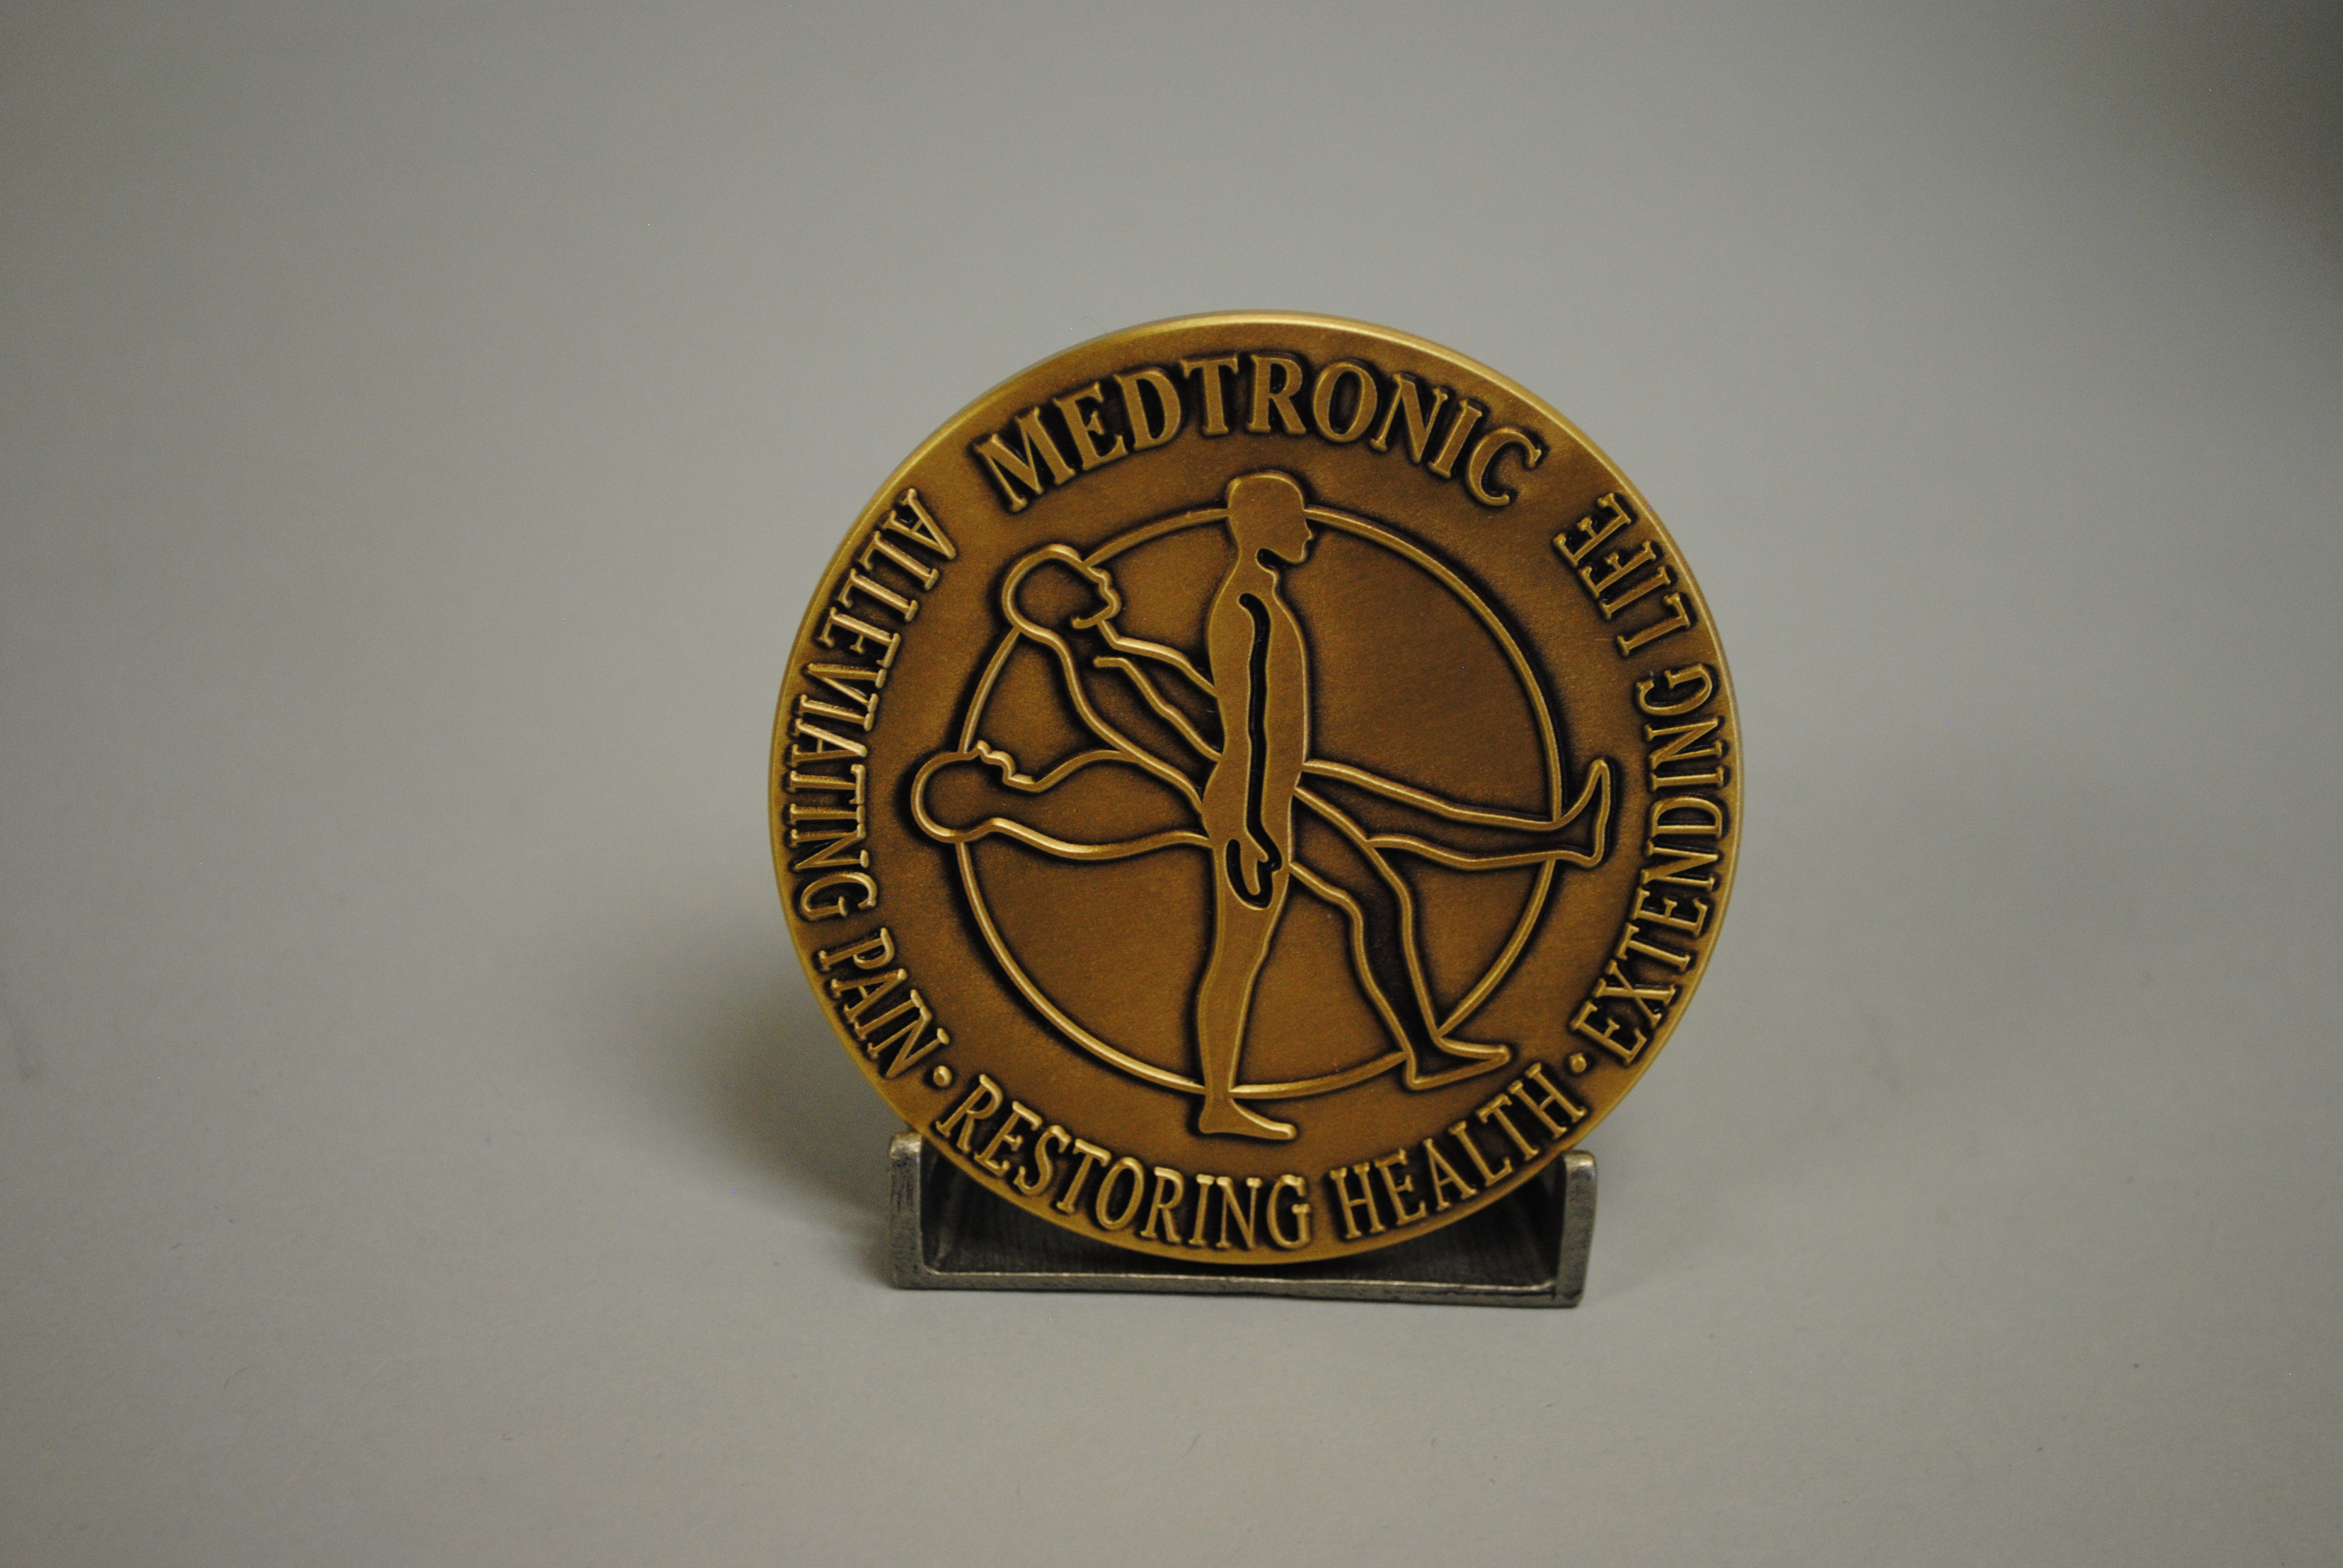 ARCH MINERAL CORPORATION SAFETY AWARD BELT BUCKLE